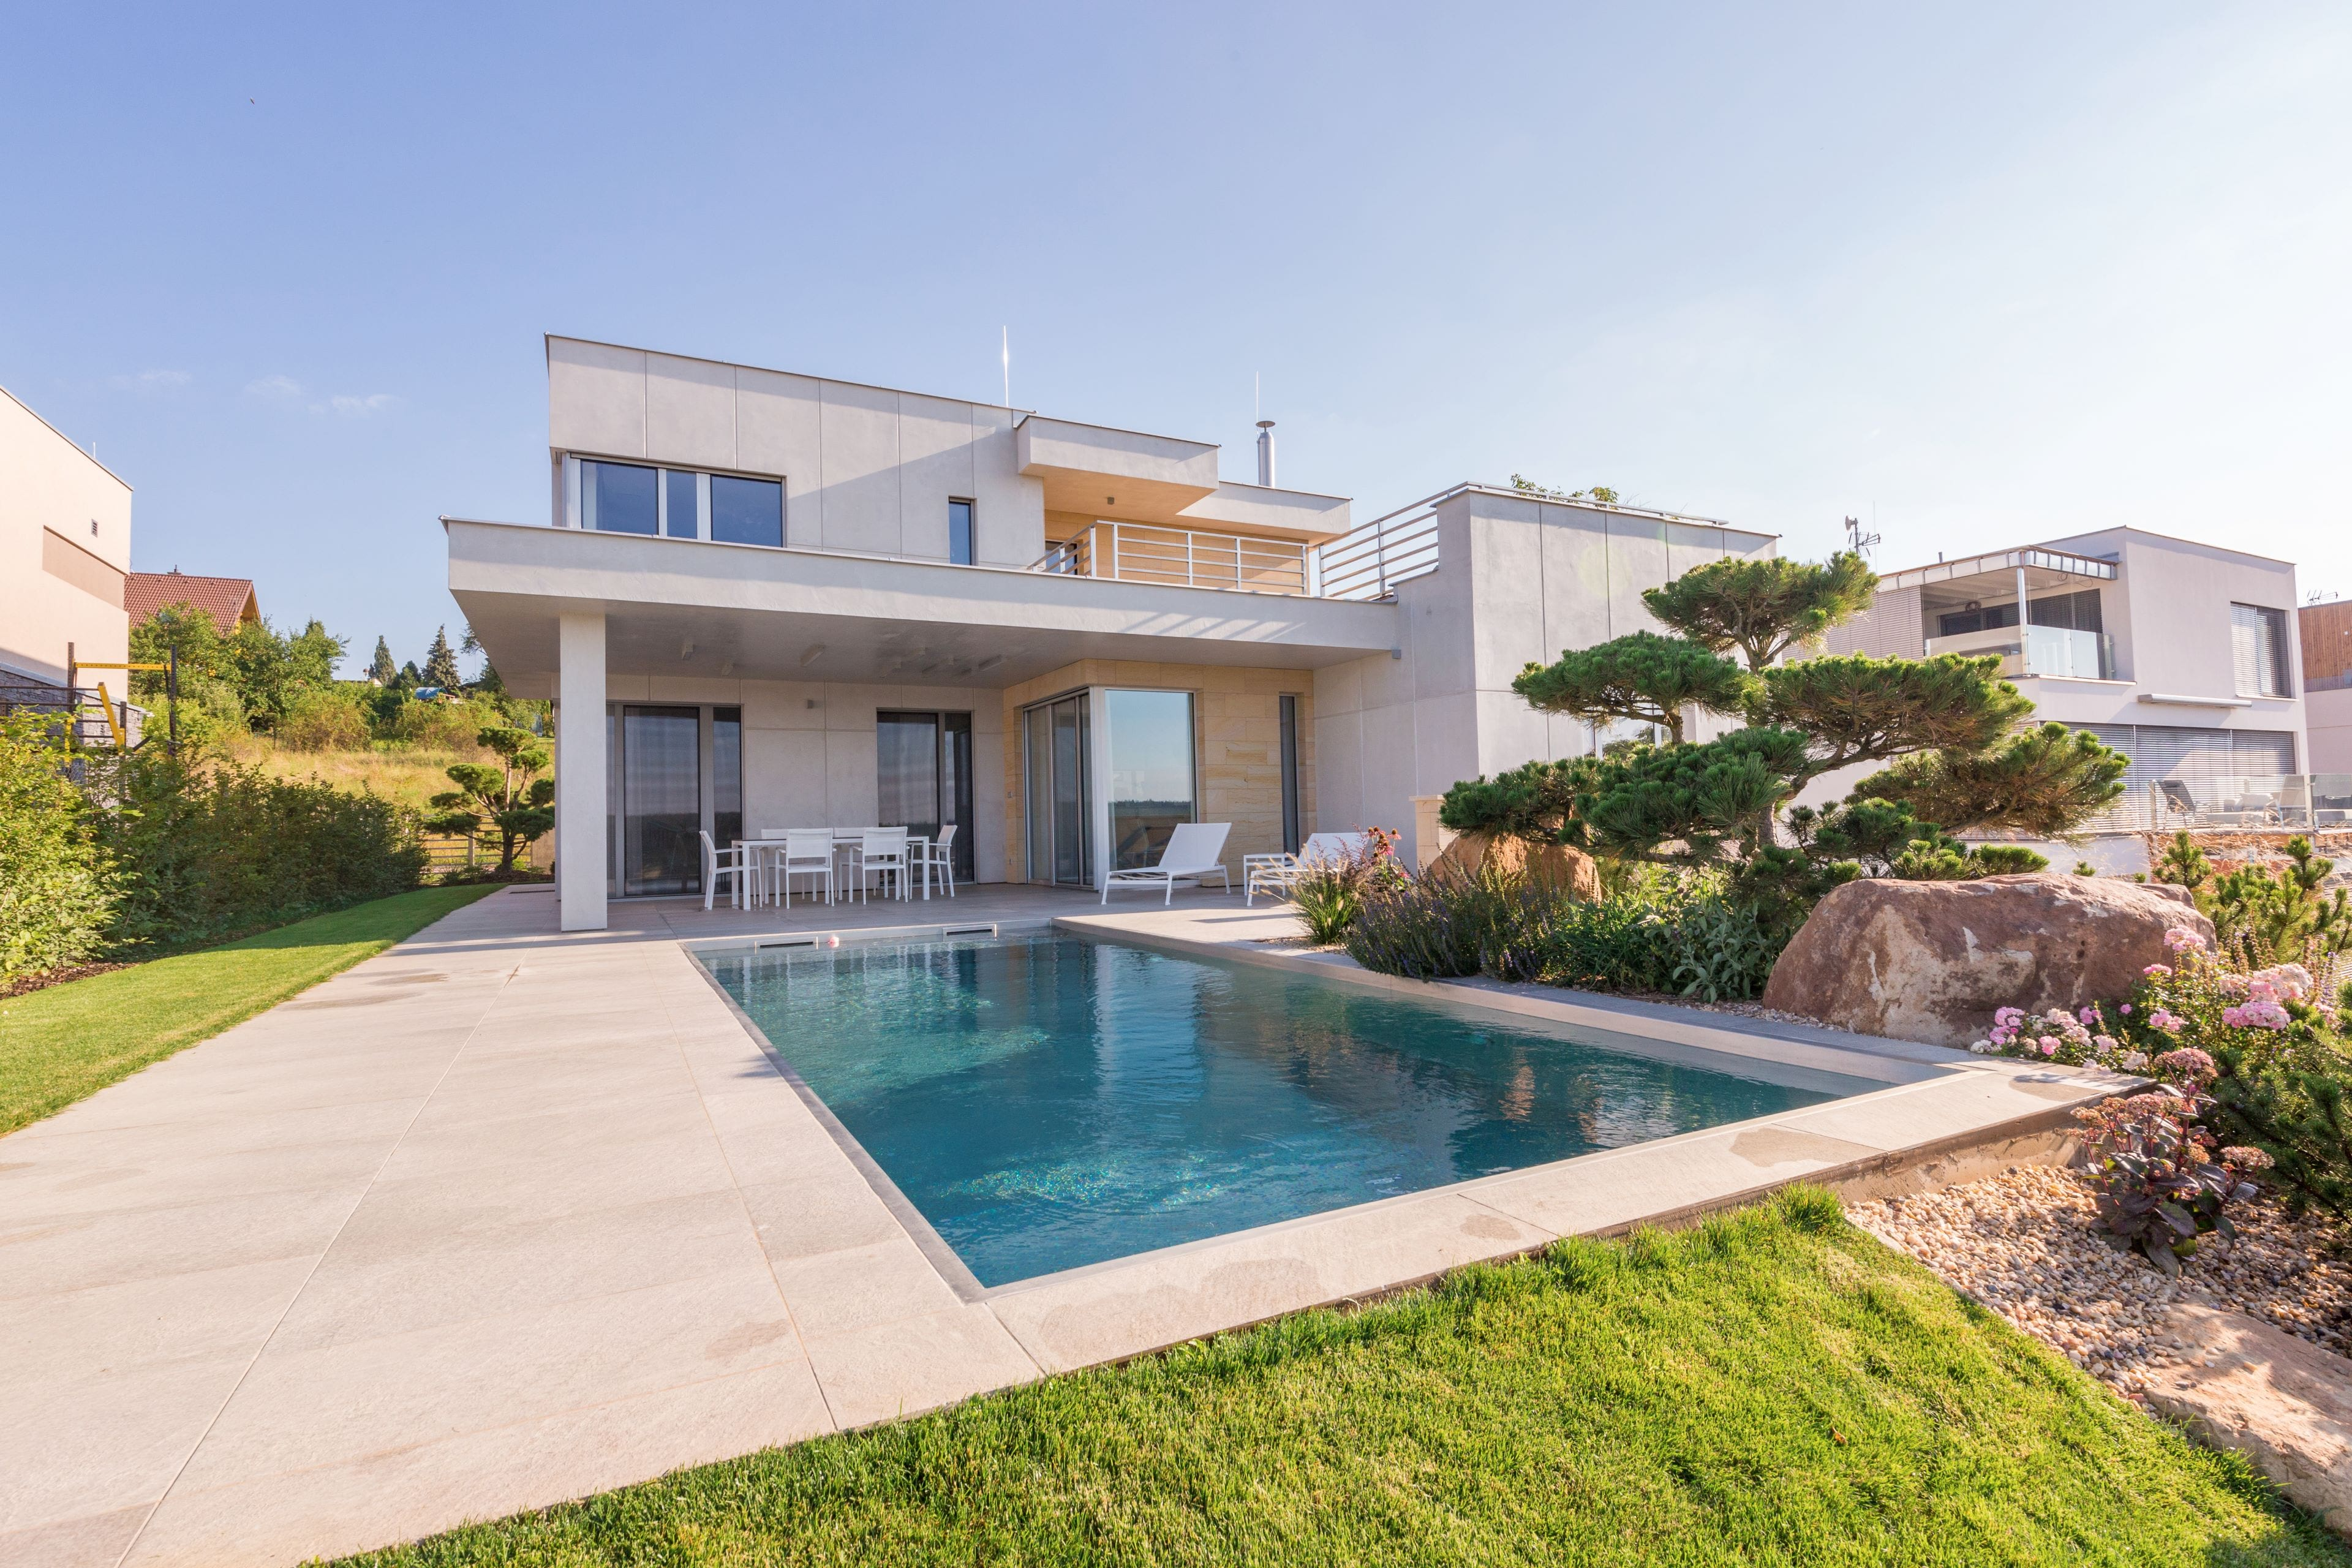 Outdoor Stainless-Steel Pool with Solar Lamella